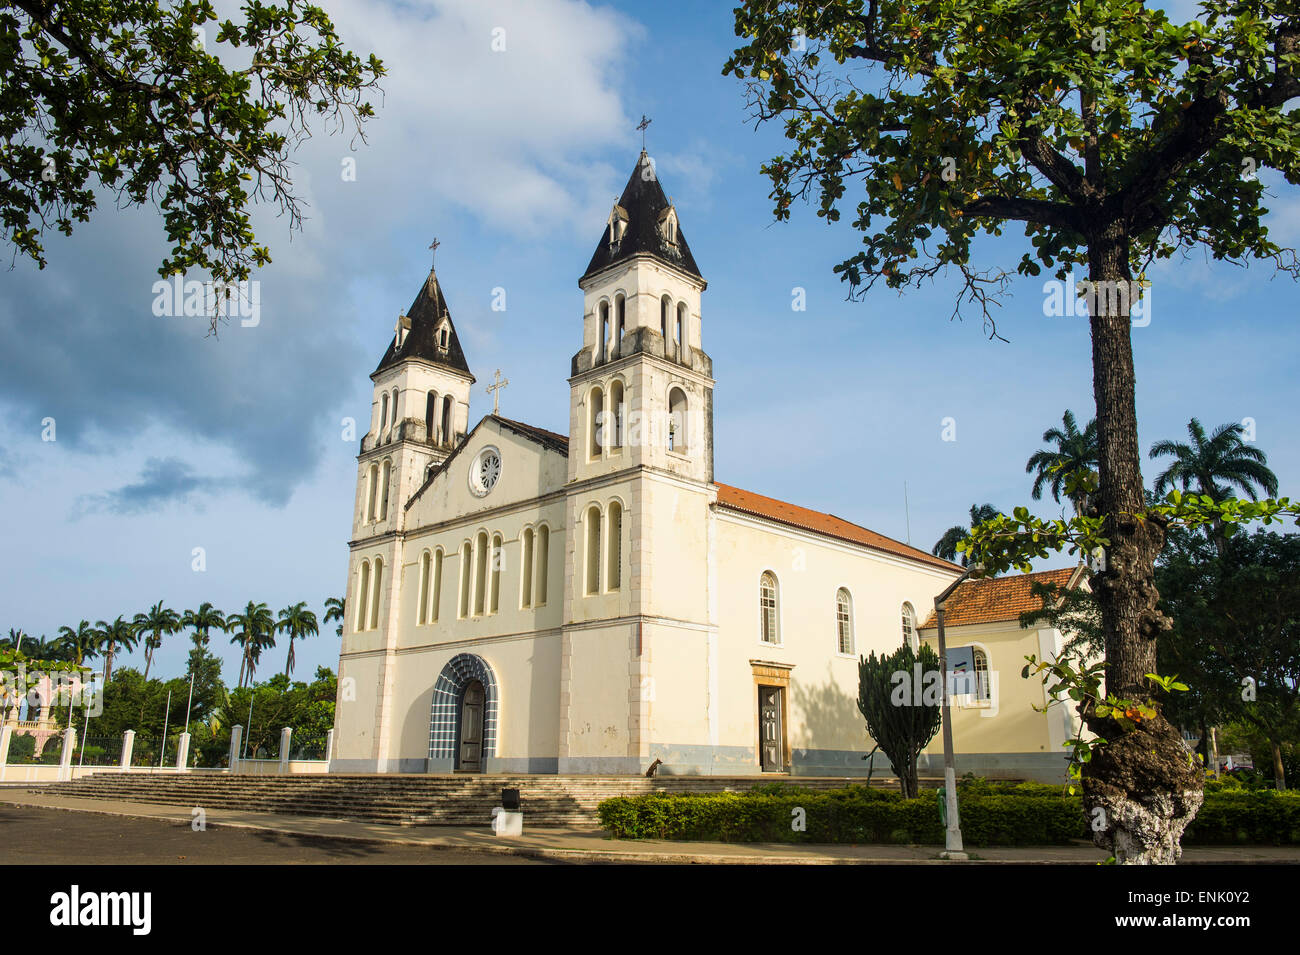 The cathedral of the city of Sao Tome, Sao Tome and Principe, Atlantic Ocean, Africa - Stock Image